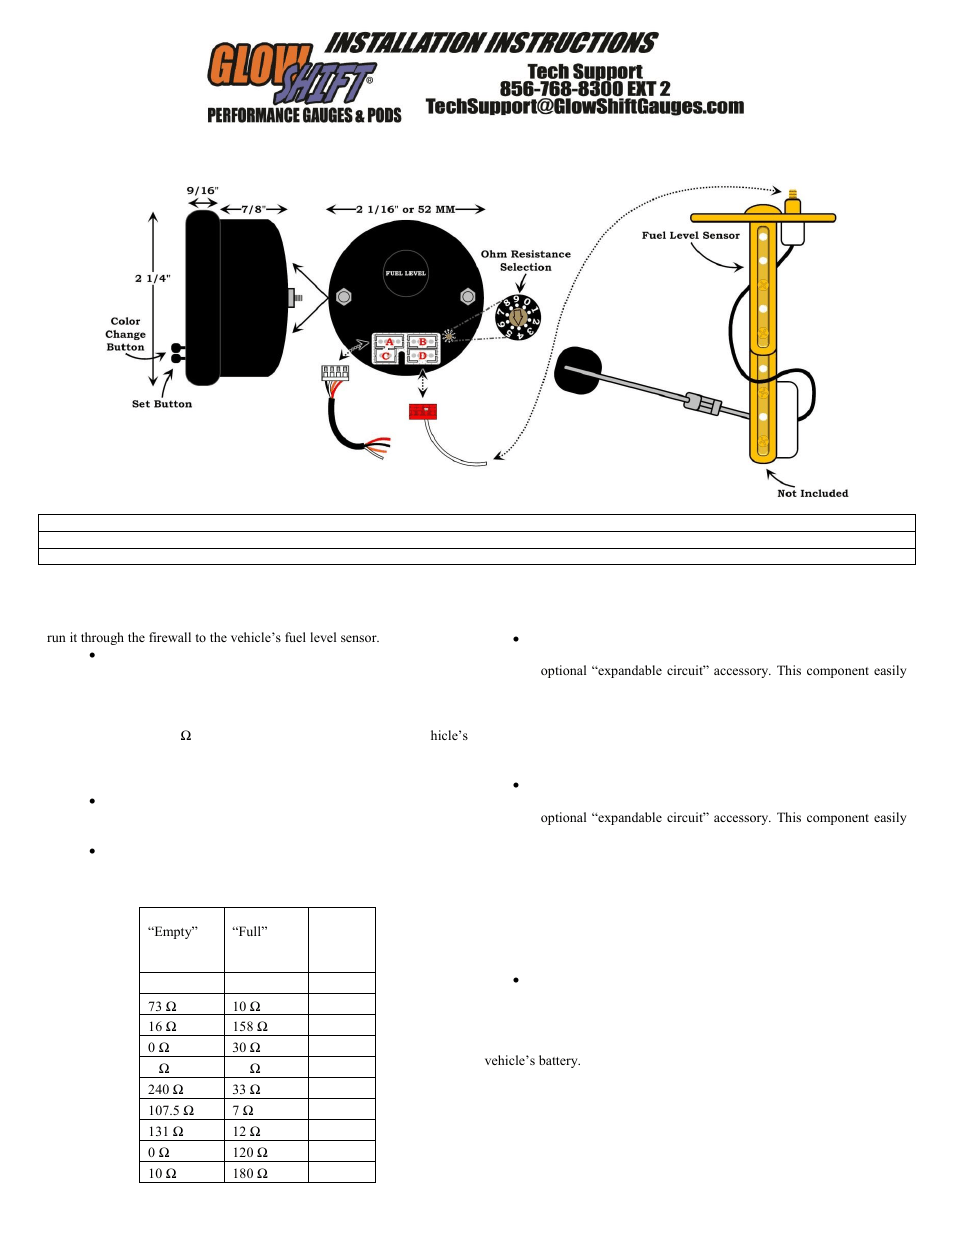 Manual Brake Gauge : Glowshift gauge light wiring diagram